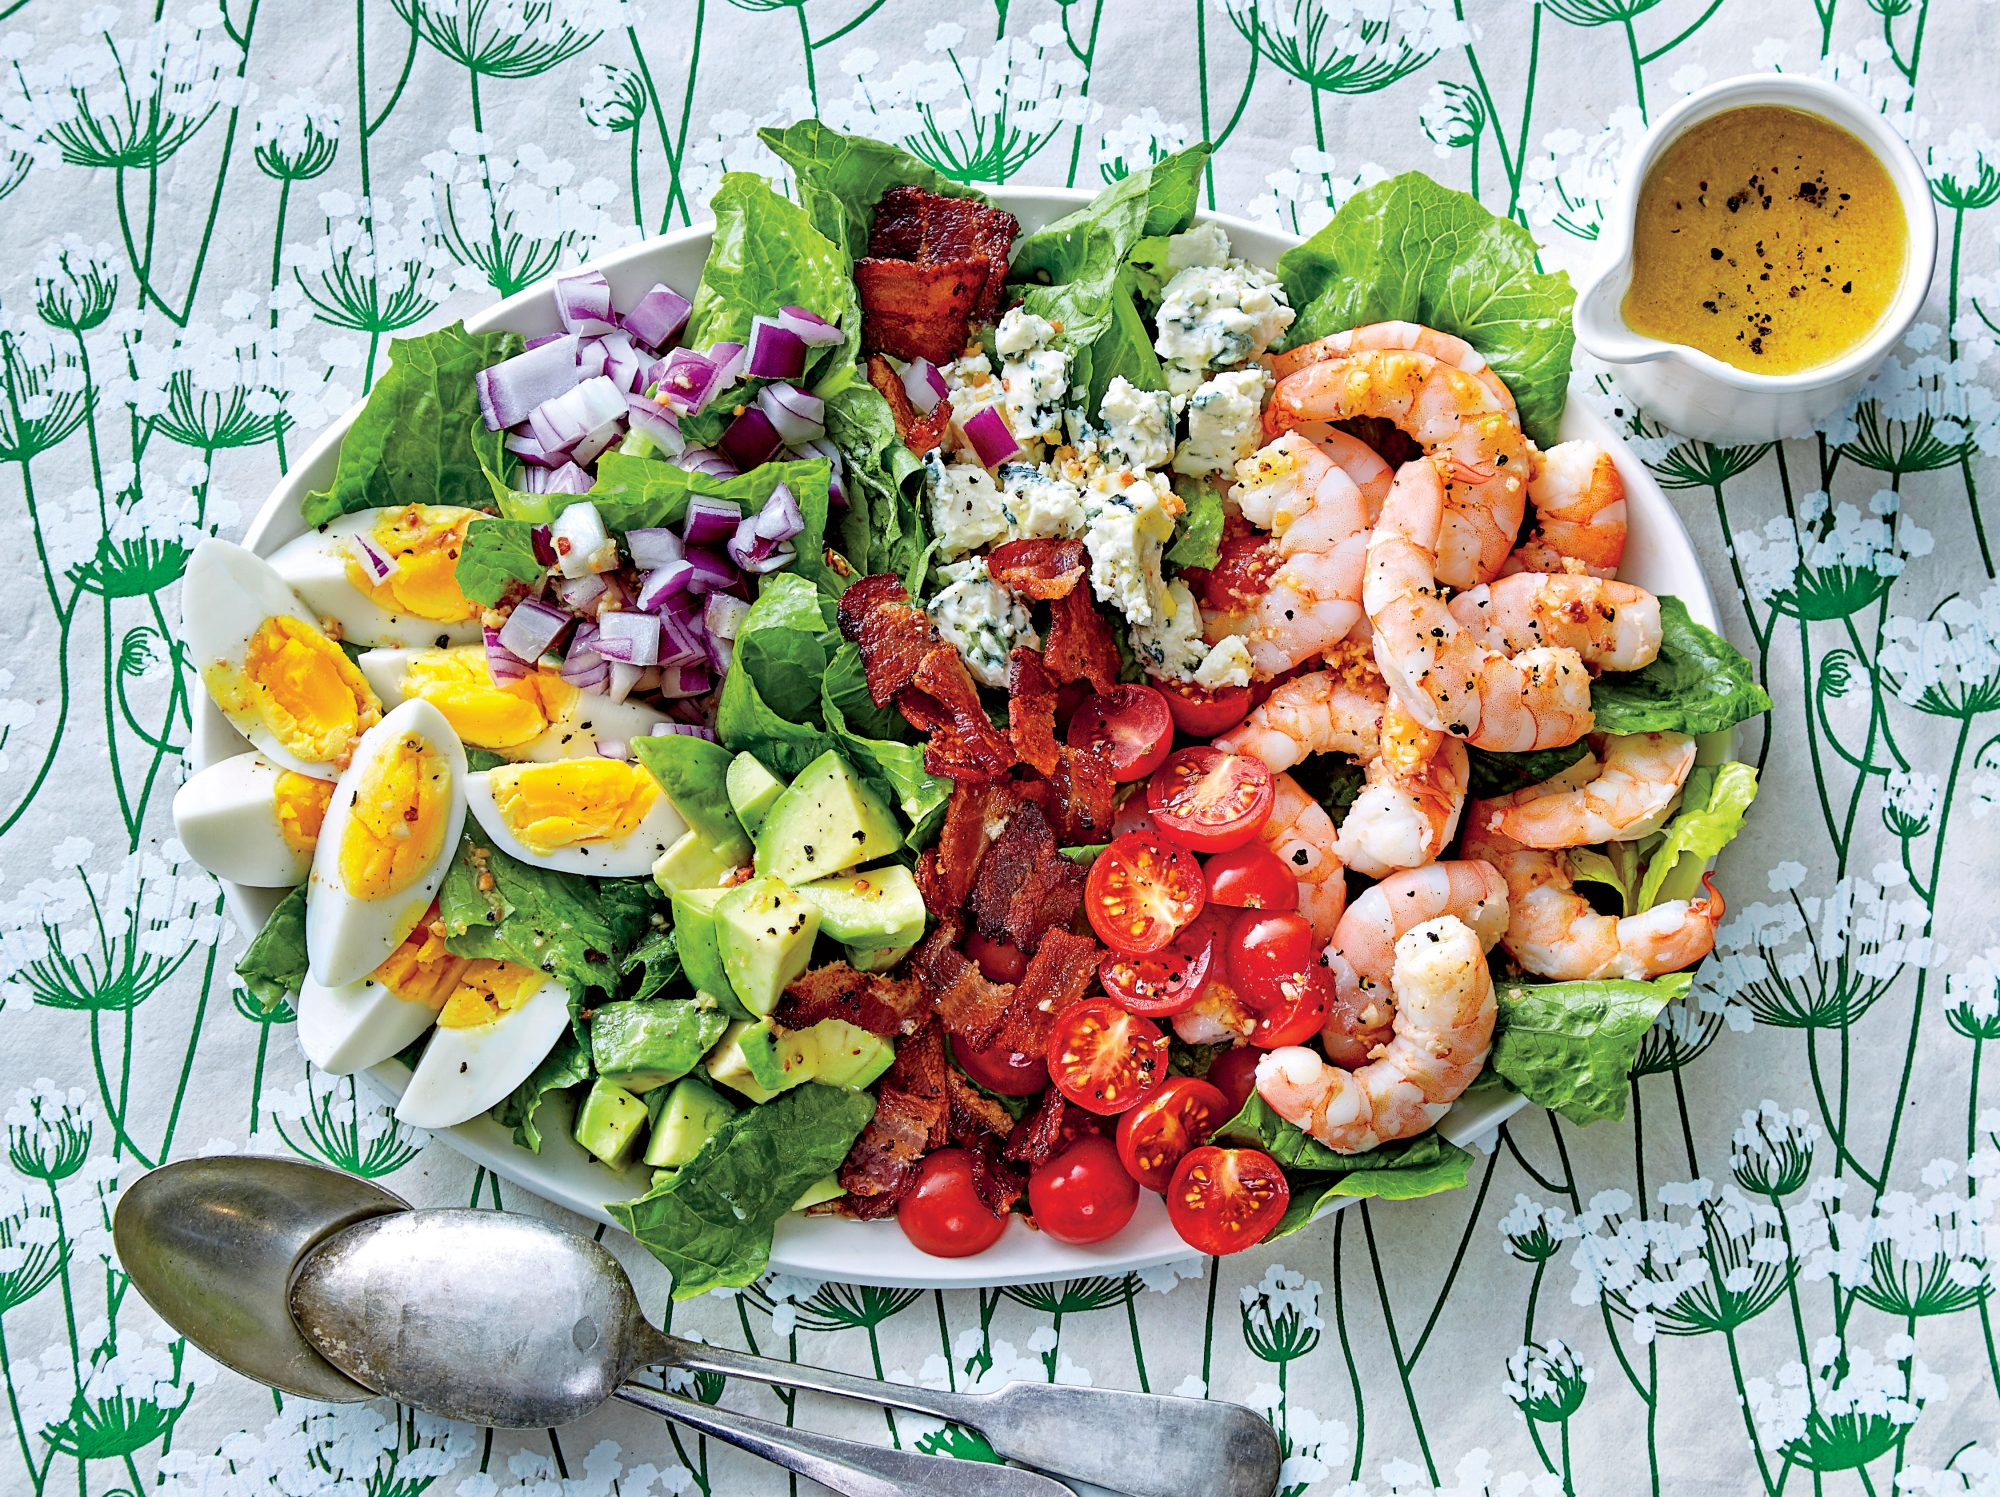 Shrimp Cobb Salad with Bacon Dressing Recipe